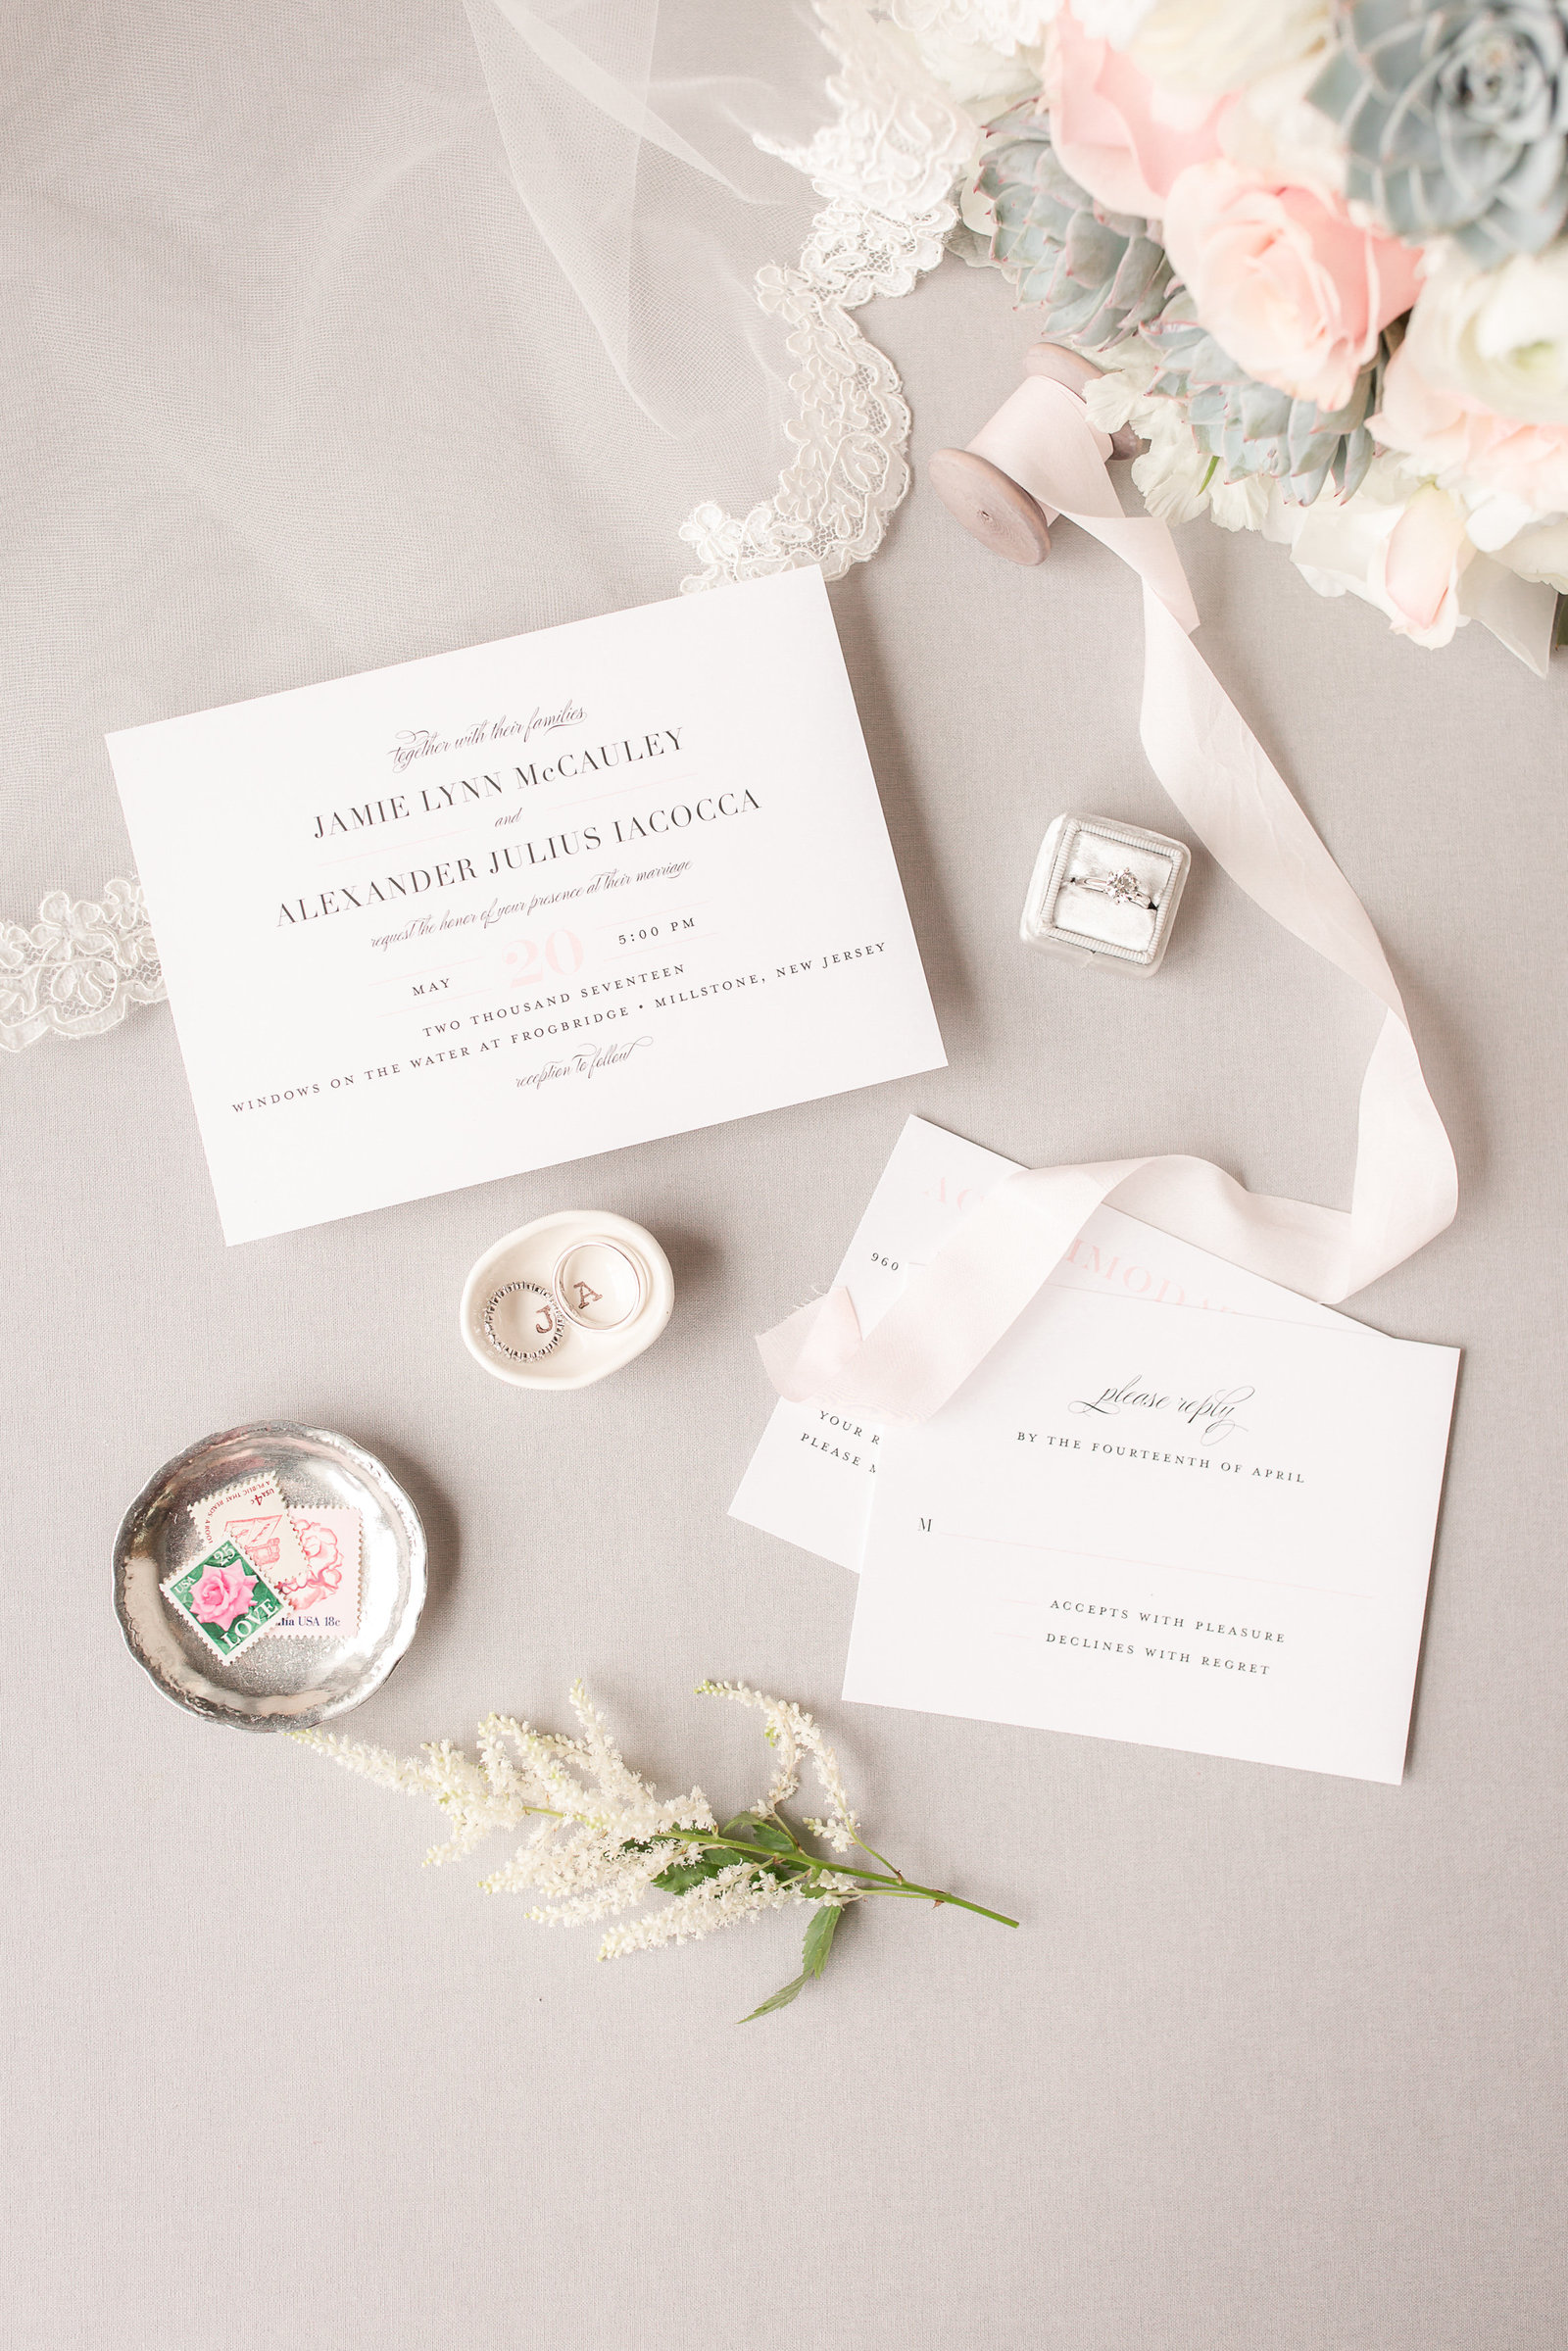 Wedding invitations for an elegant and romantic wedding